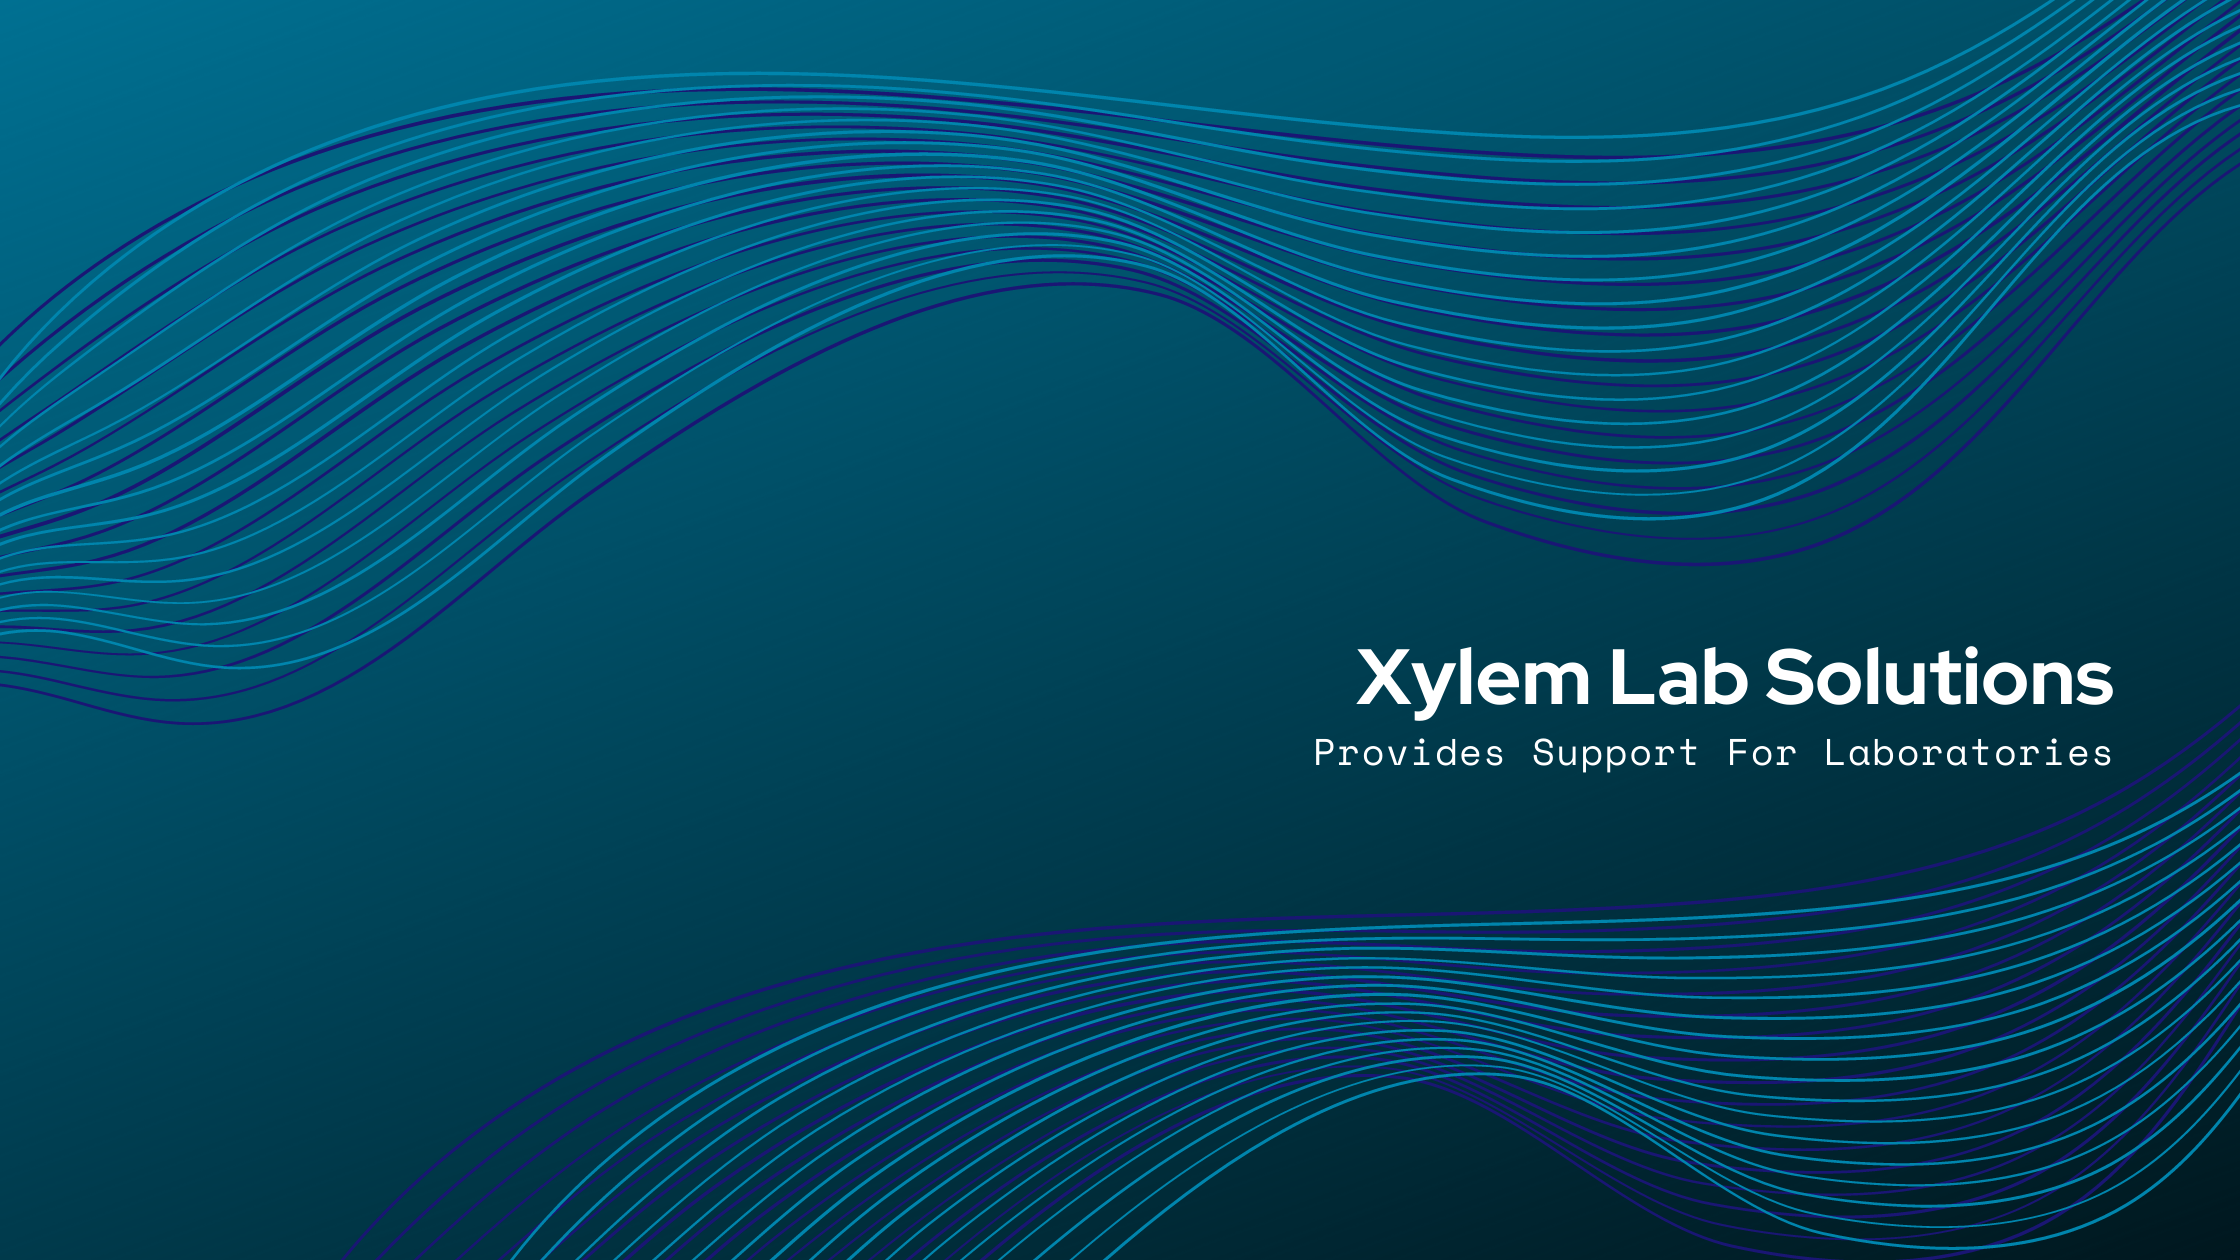 Xylem Lab Solutions Provides Support